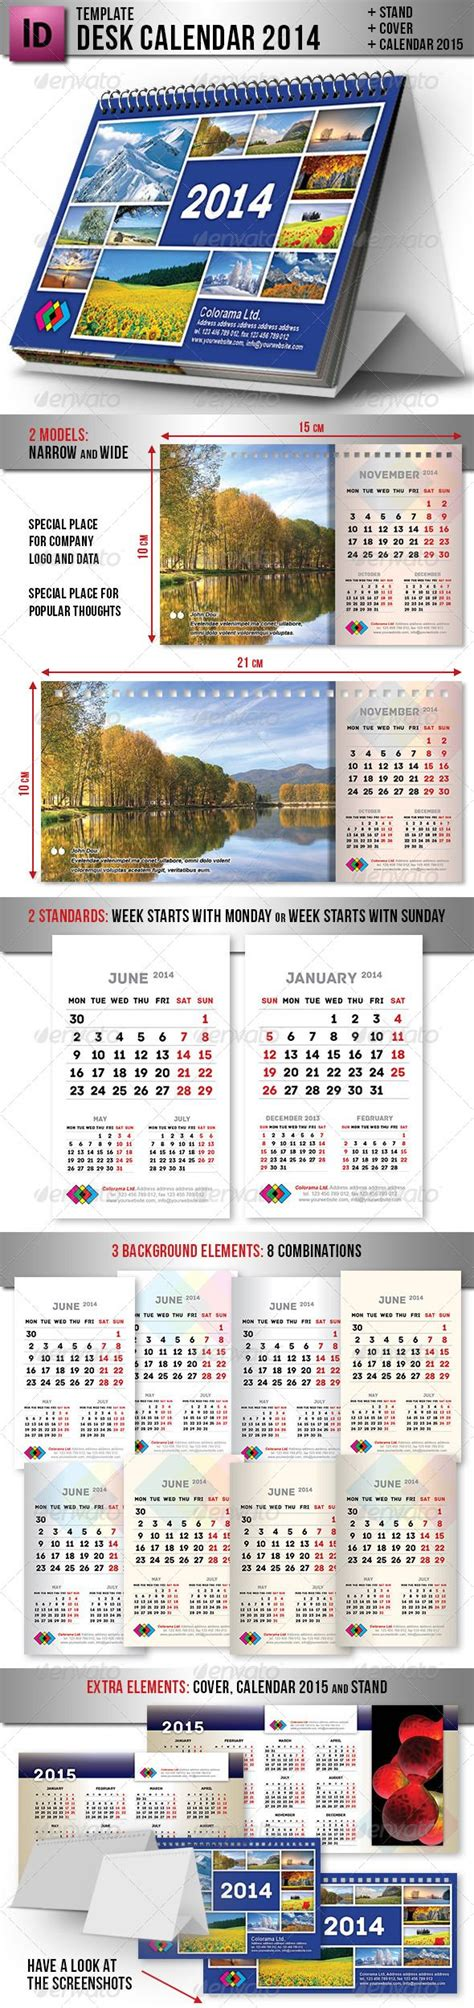 calendar templates for photoshop cs6 1000 images about print templates on pinterest adobe